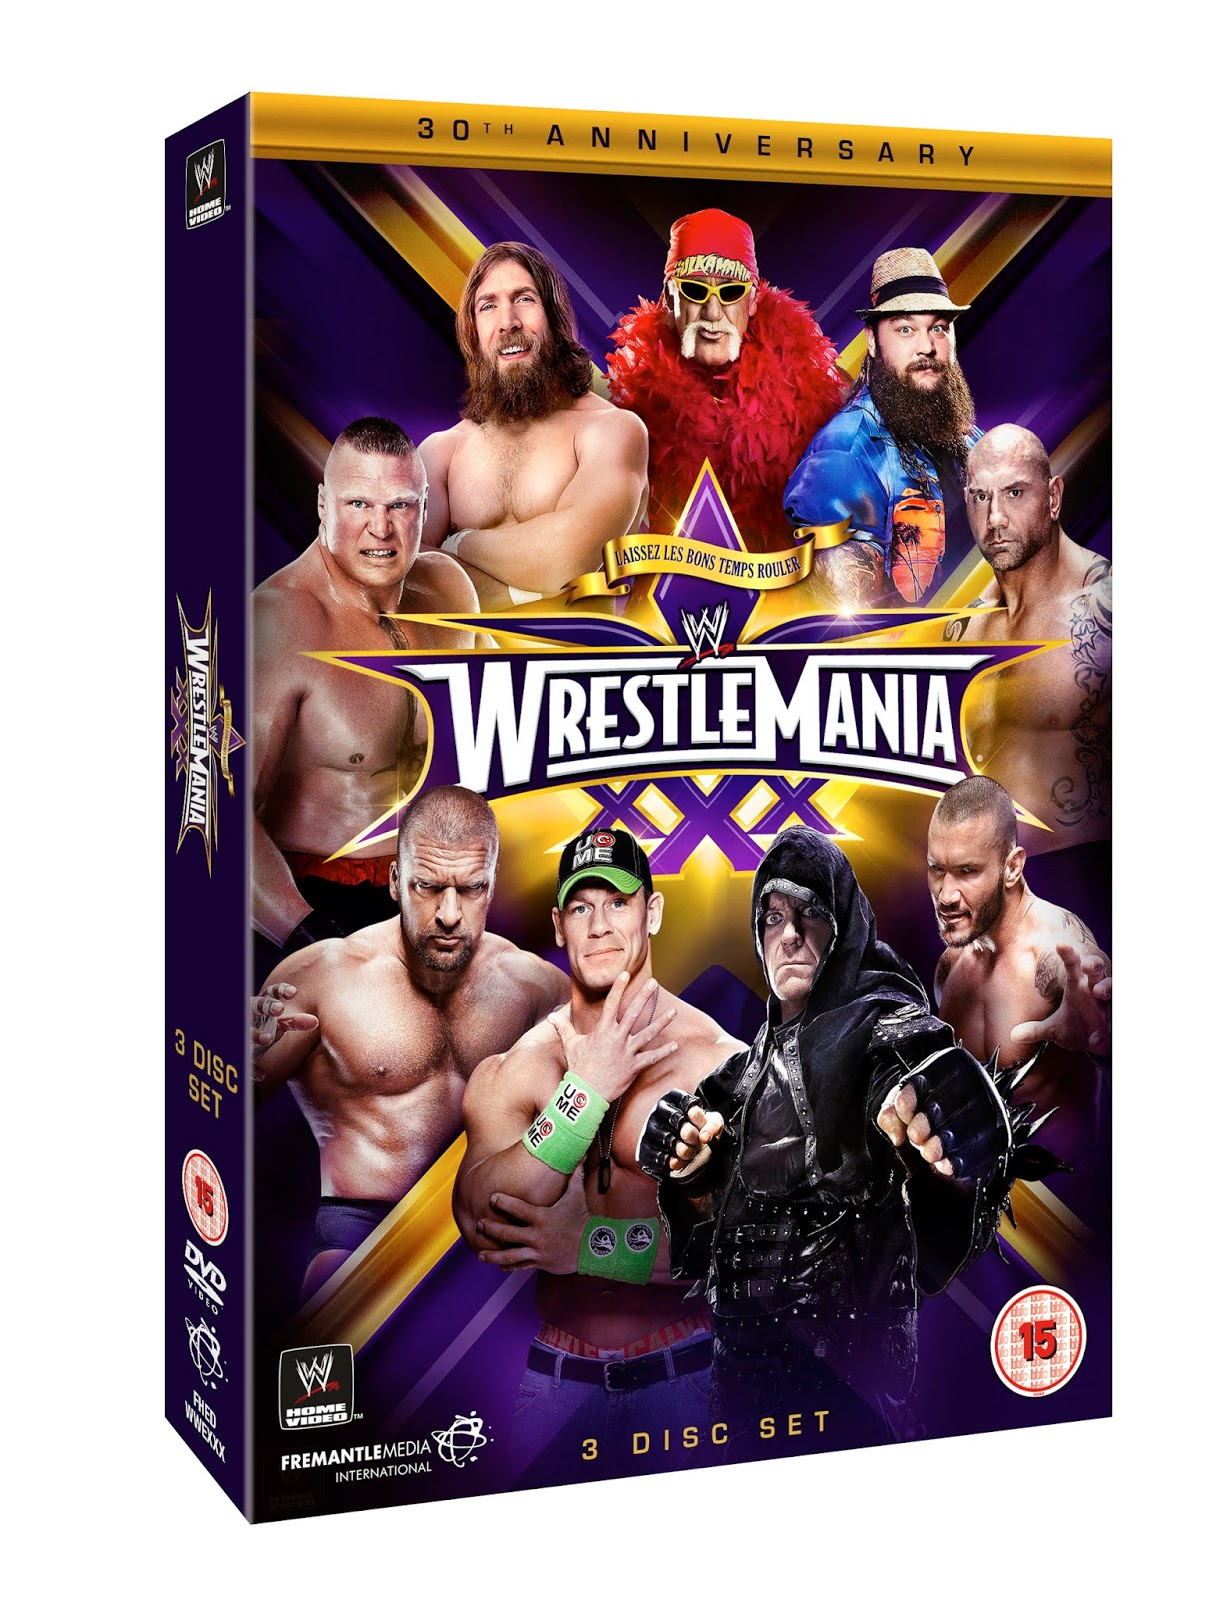 49ac86482a34 For me personally, the main event of WrestleMania XXX was the opening  contest, between Daniel Bryan and Triple H. Not only was it given the most  time on the ...